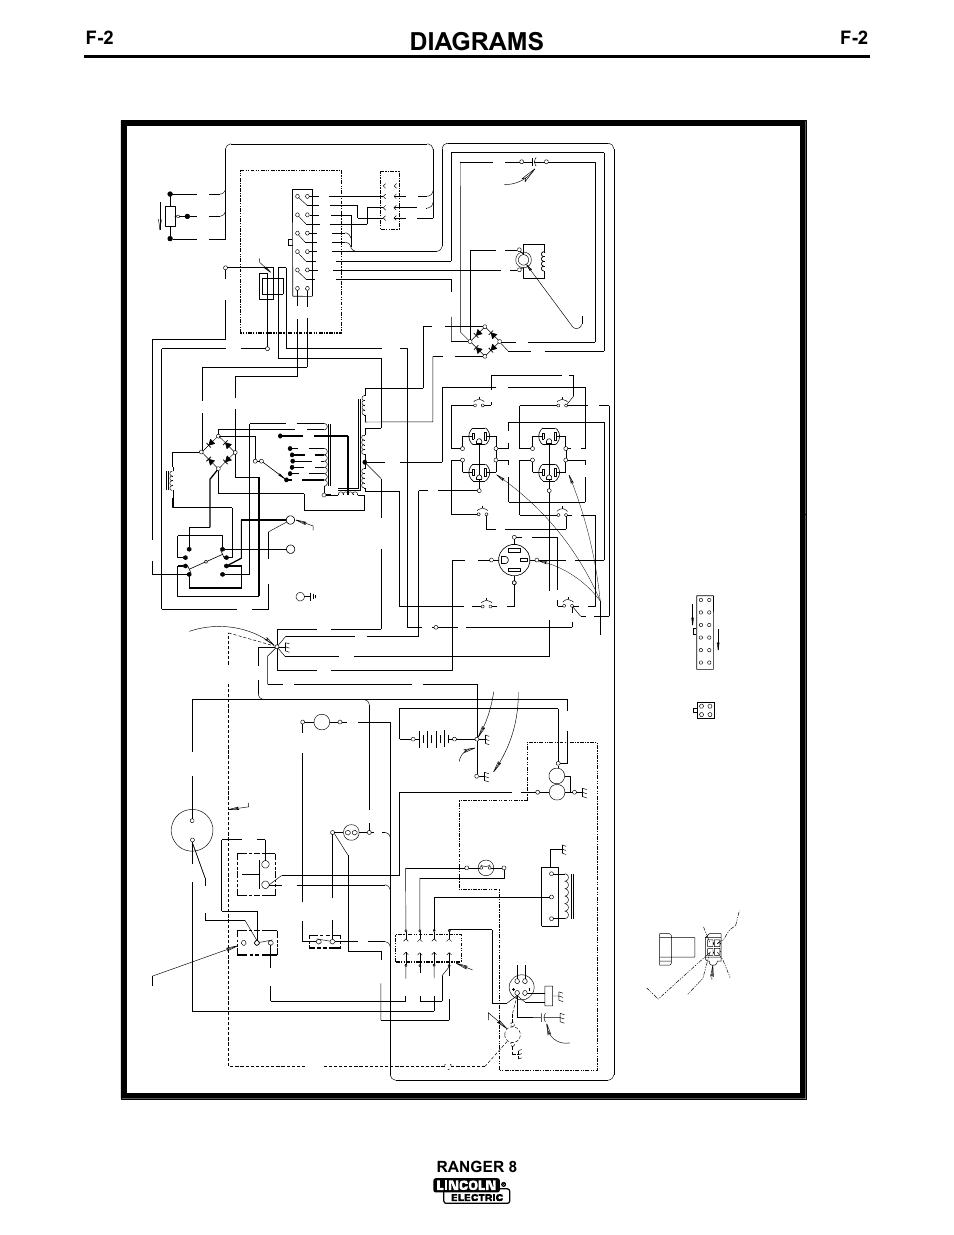 hight resolution of diagrams ranger 8 electrical symbols per e1537 lincoln electric im510 ranger 8 user manual page 31 42